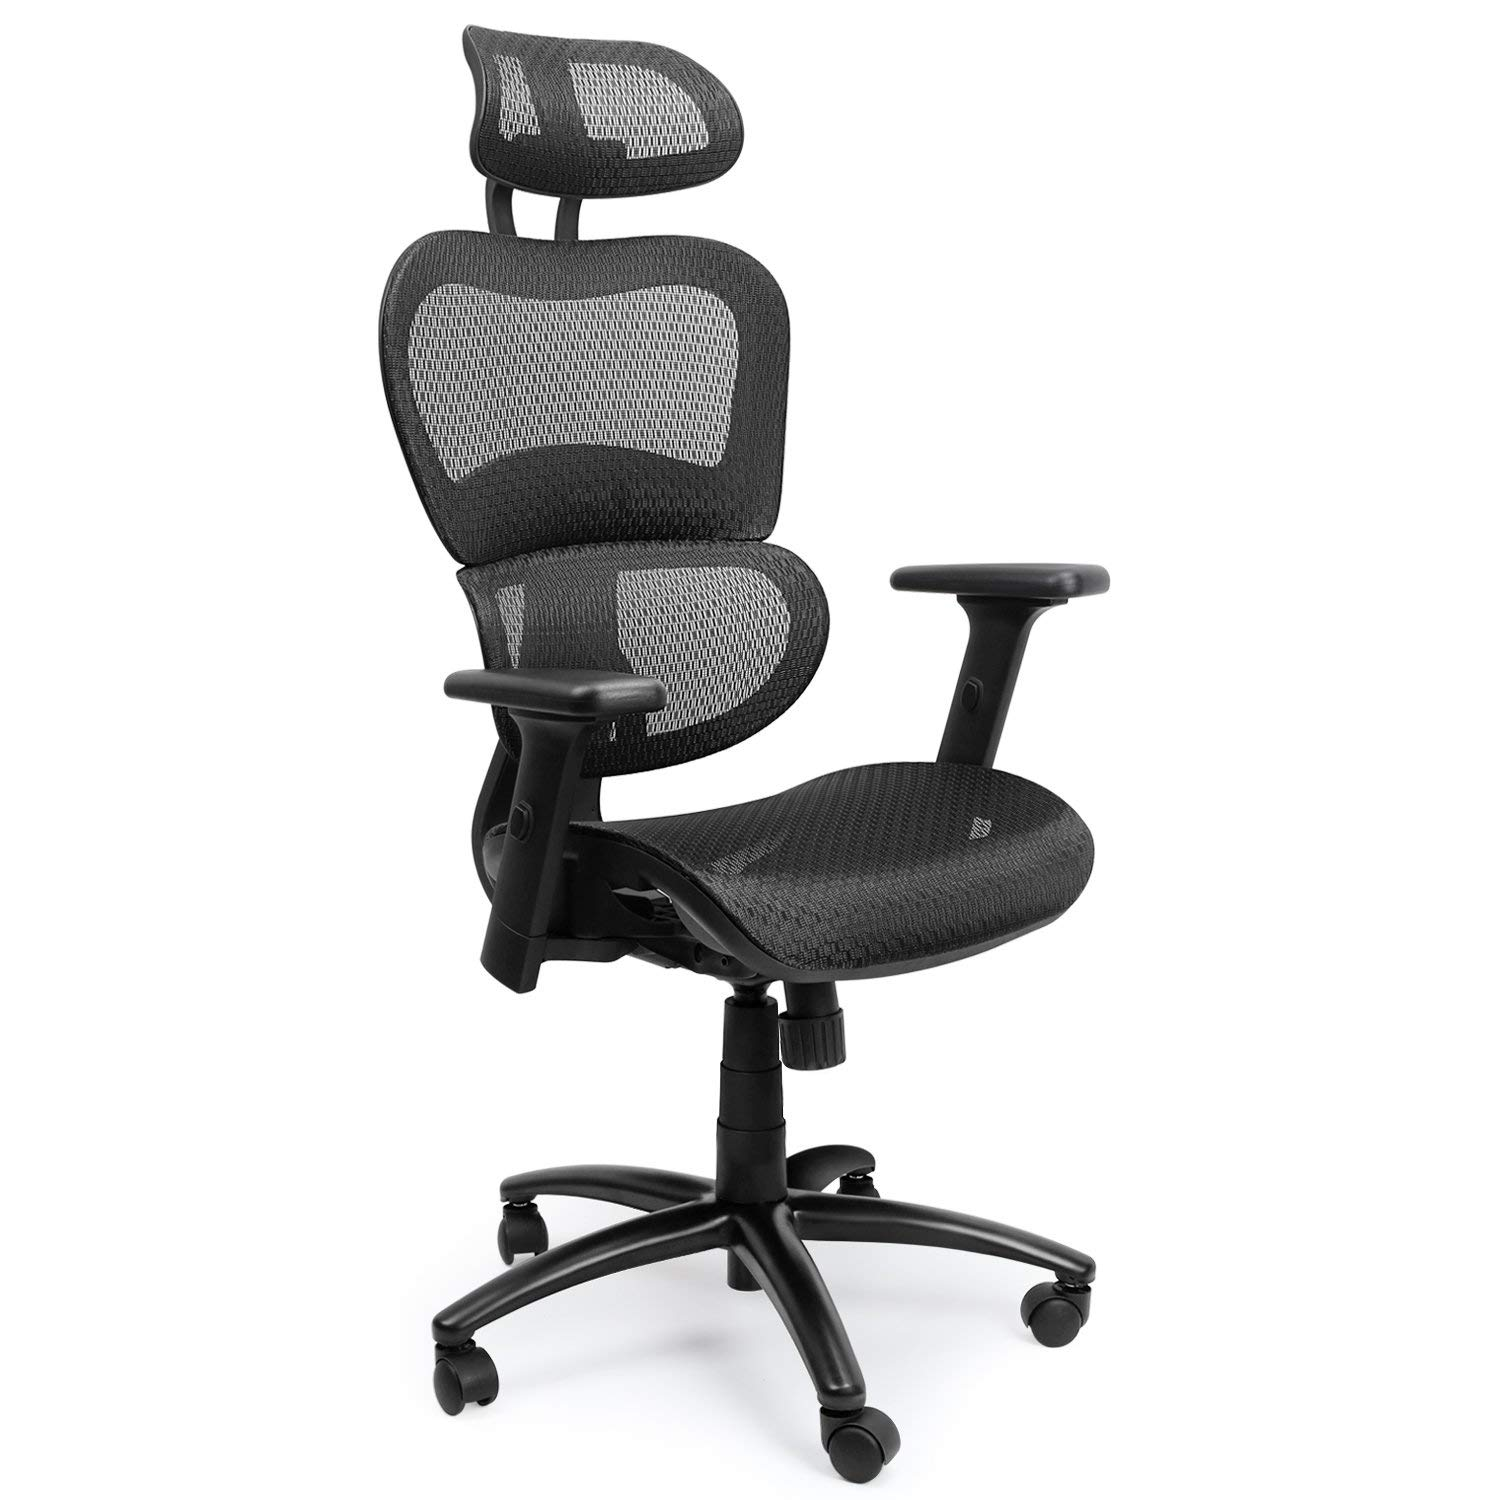 Mysuntown Task Chair, Ergonomic Mesh Office Chair for Home or Office Room, Chair with Back Support, Adjustable Headrest & Adjustable Armrests